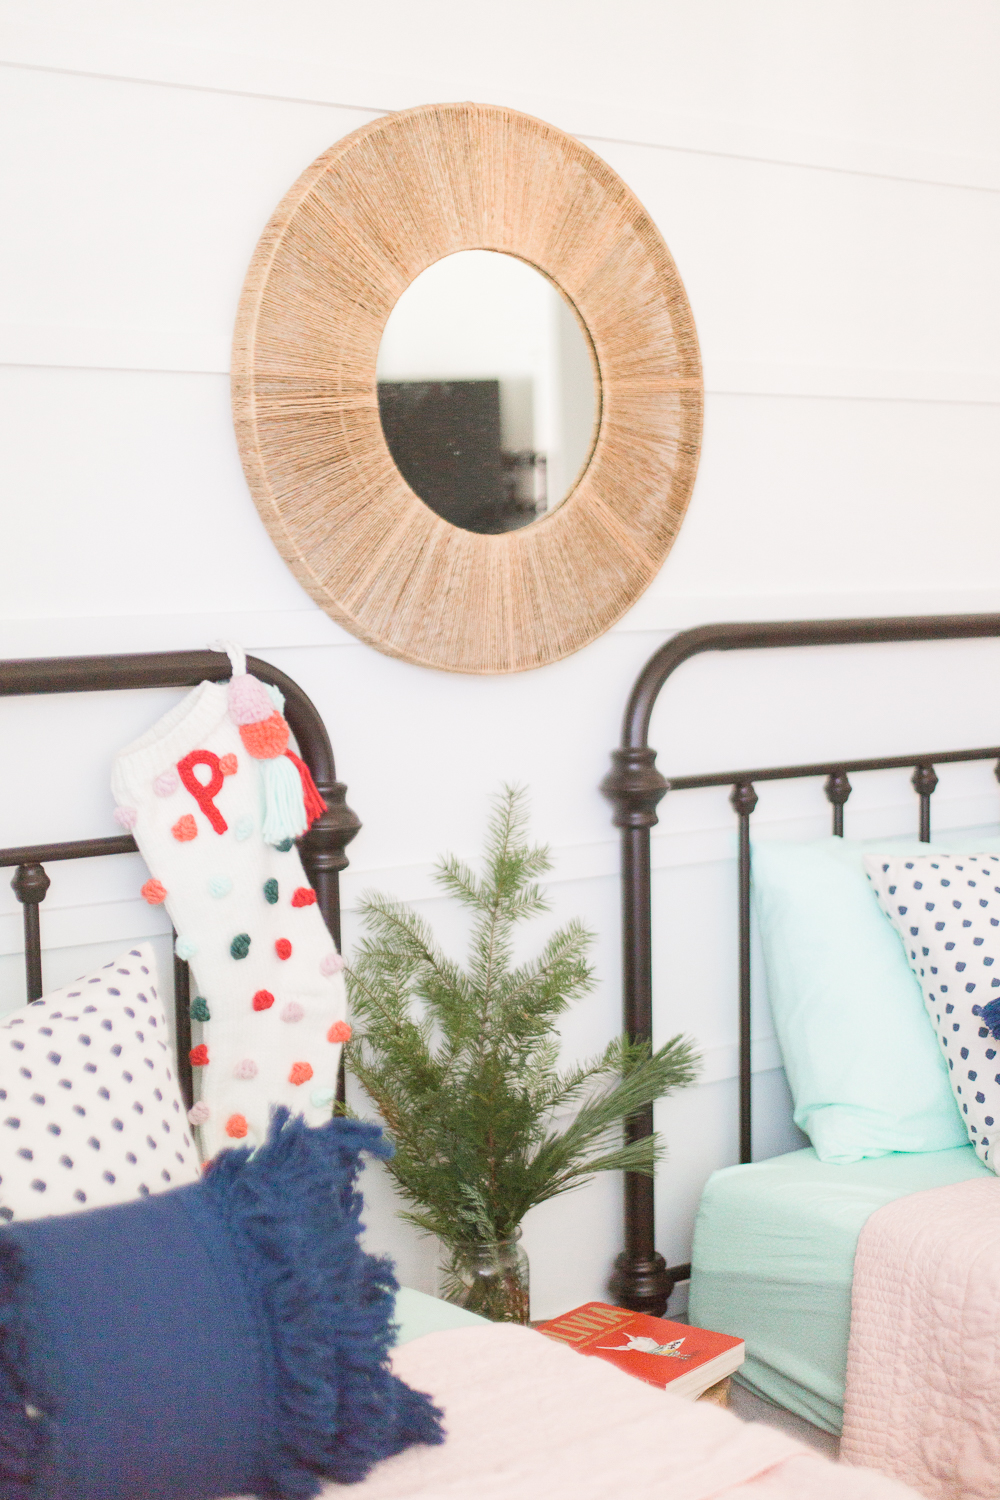 Decorating the Girls Room for Christmas - Making Home Base